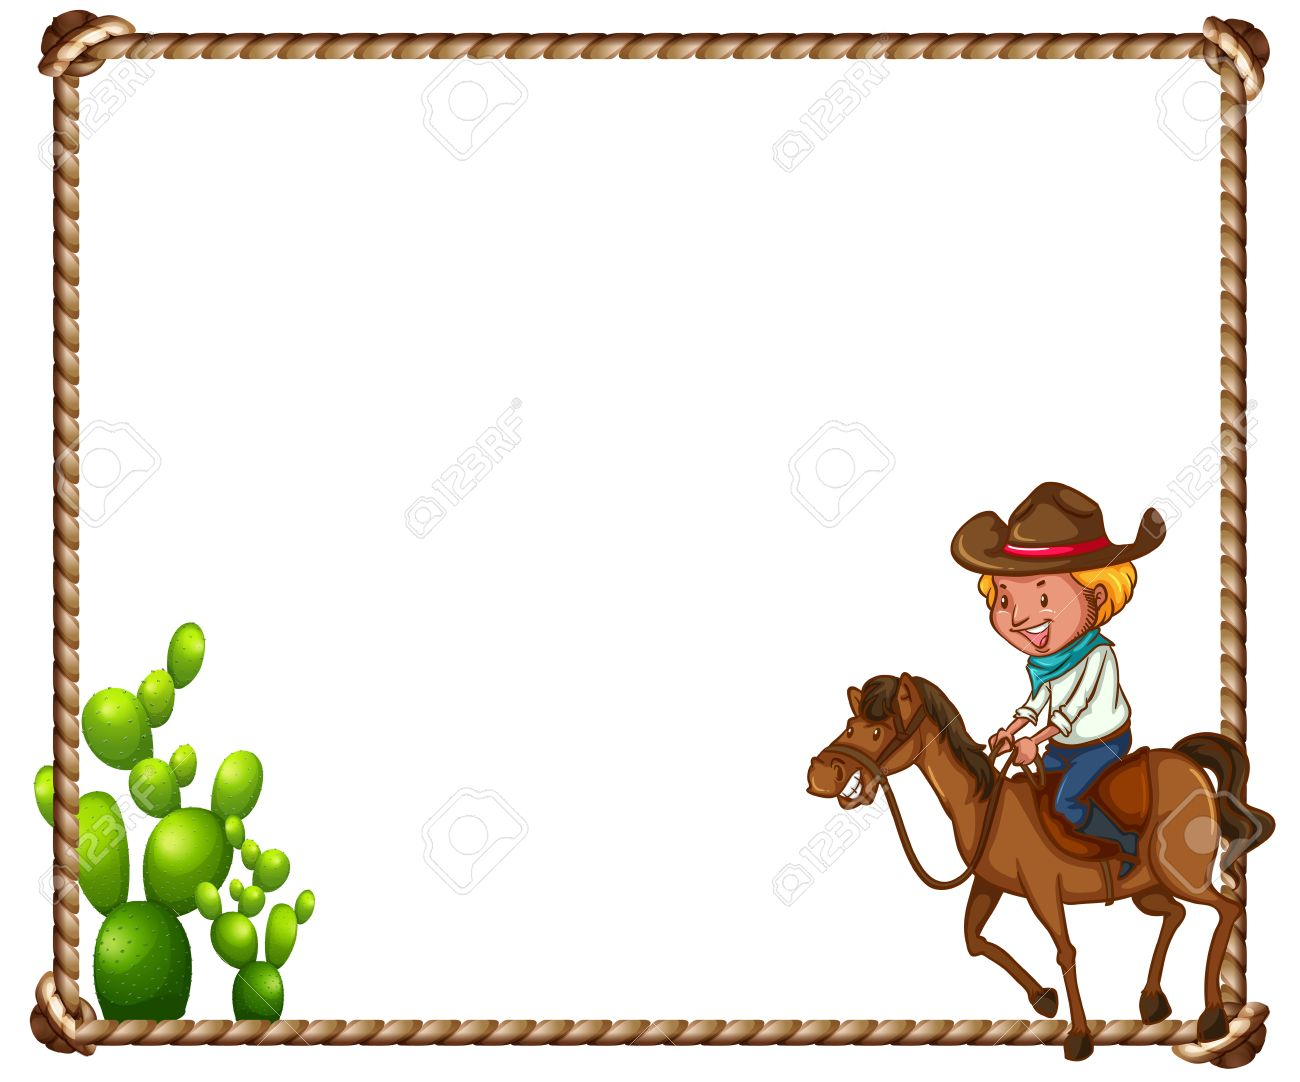 Rope and cowboy theme frame.